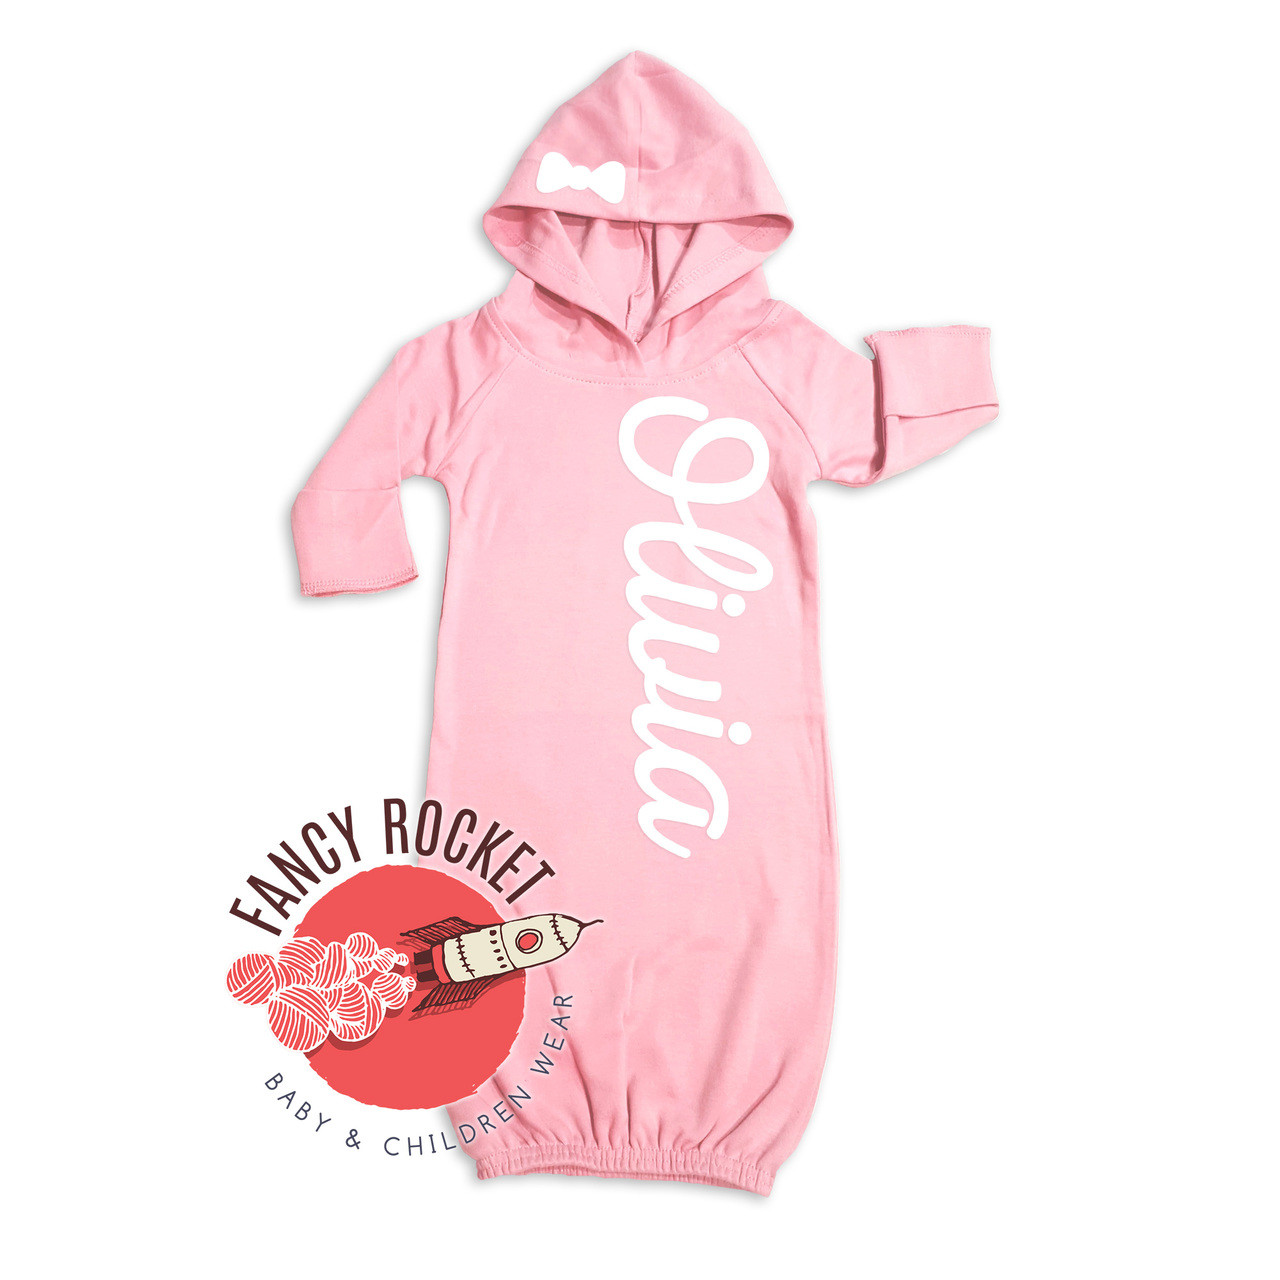 Personalized Baby Gown Newborn Retro Varsity going home Outfit 0-3 ...